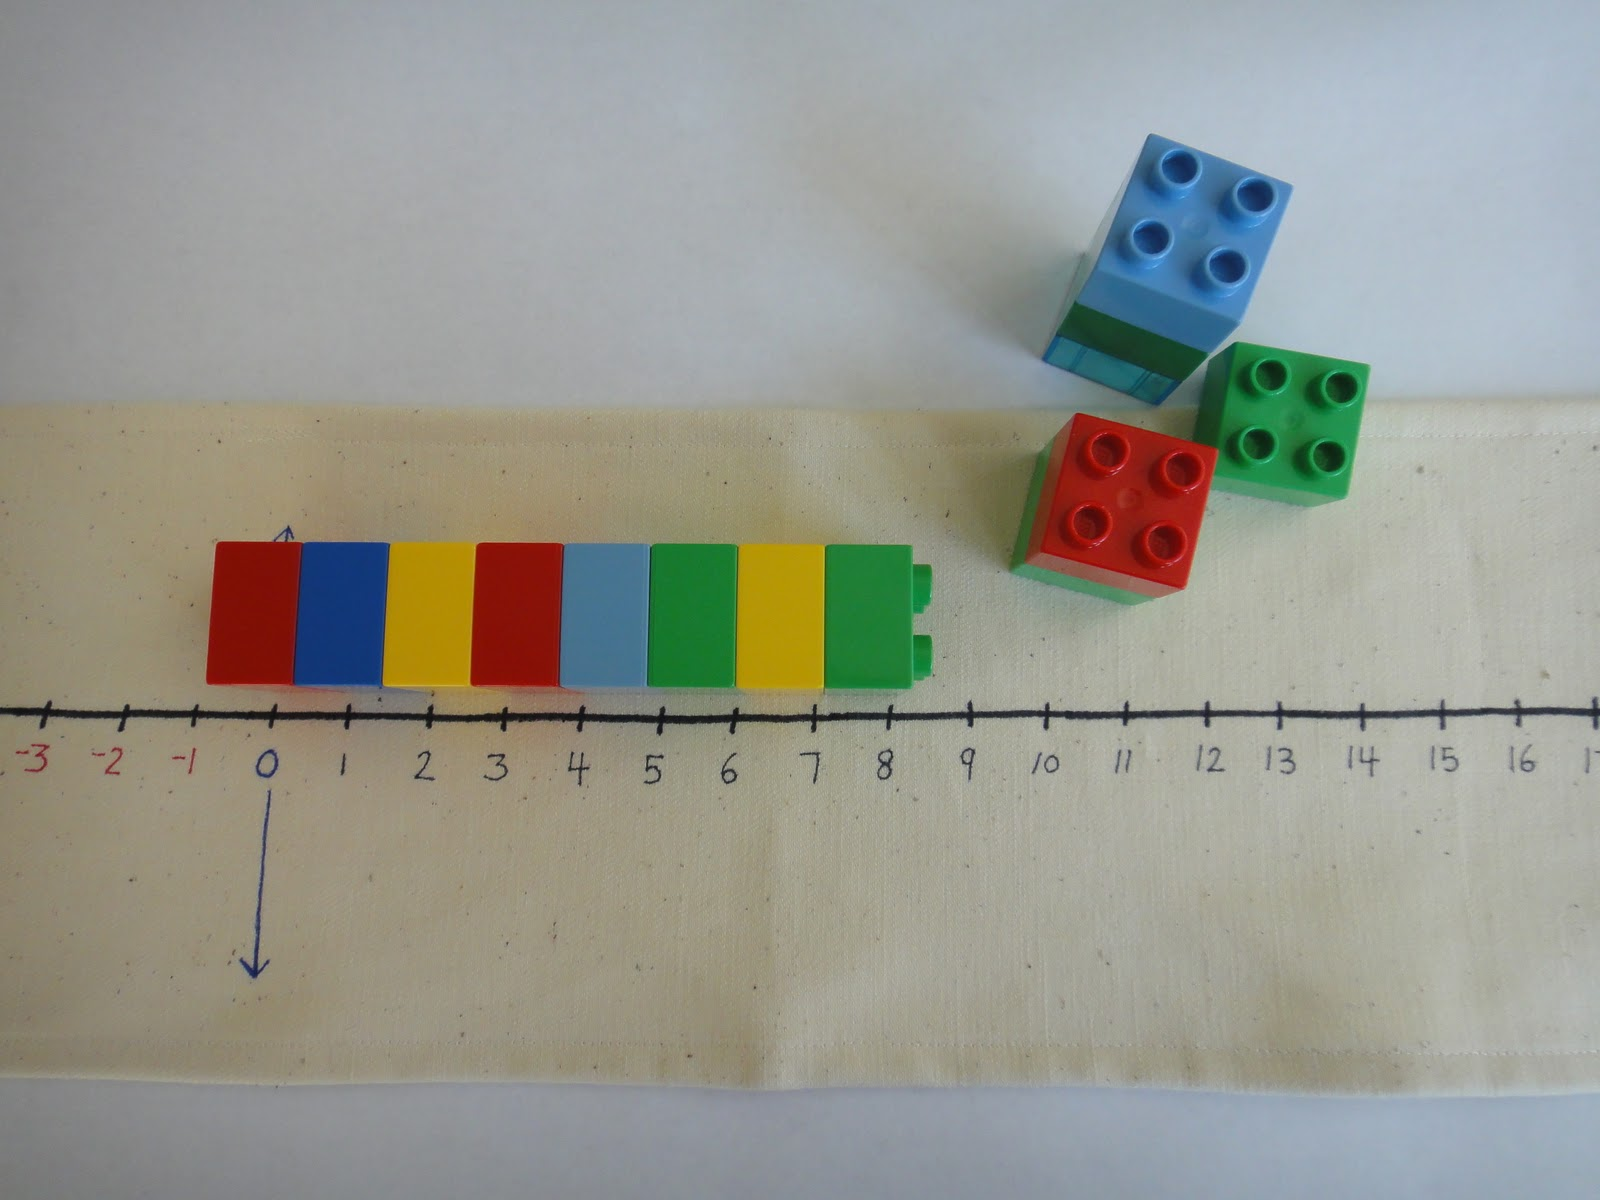 Valu0027s Number Scroll: Helping Kids Visualize Math